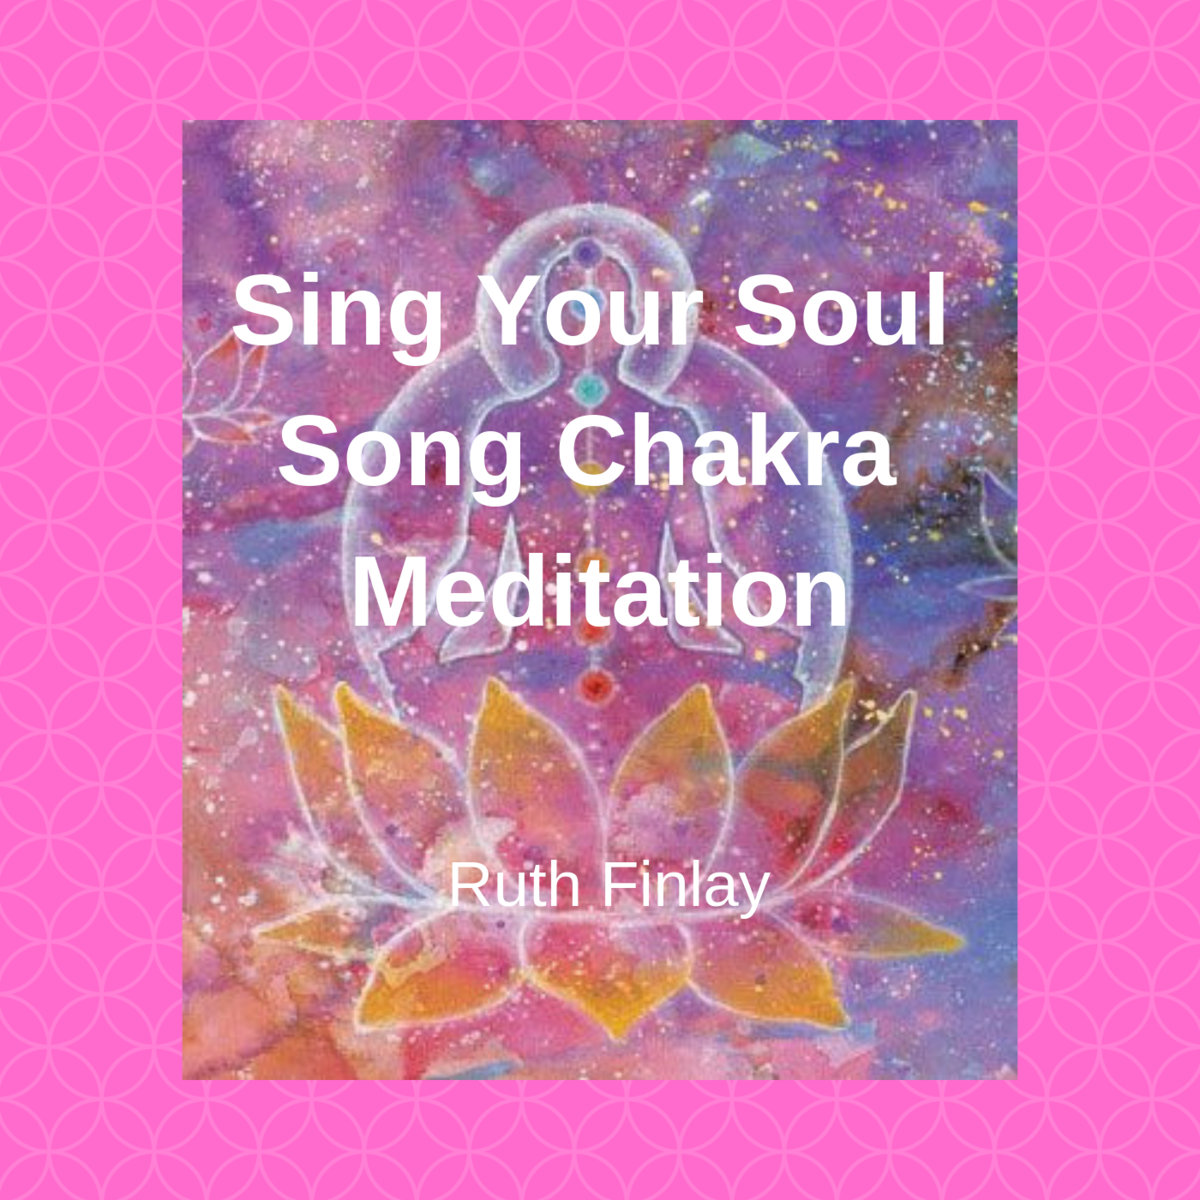 Sing Your Soul Song Chakra Meditation | Ruth Finlay